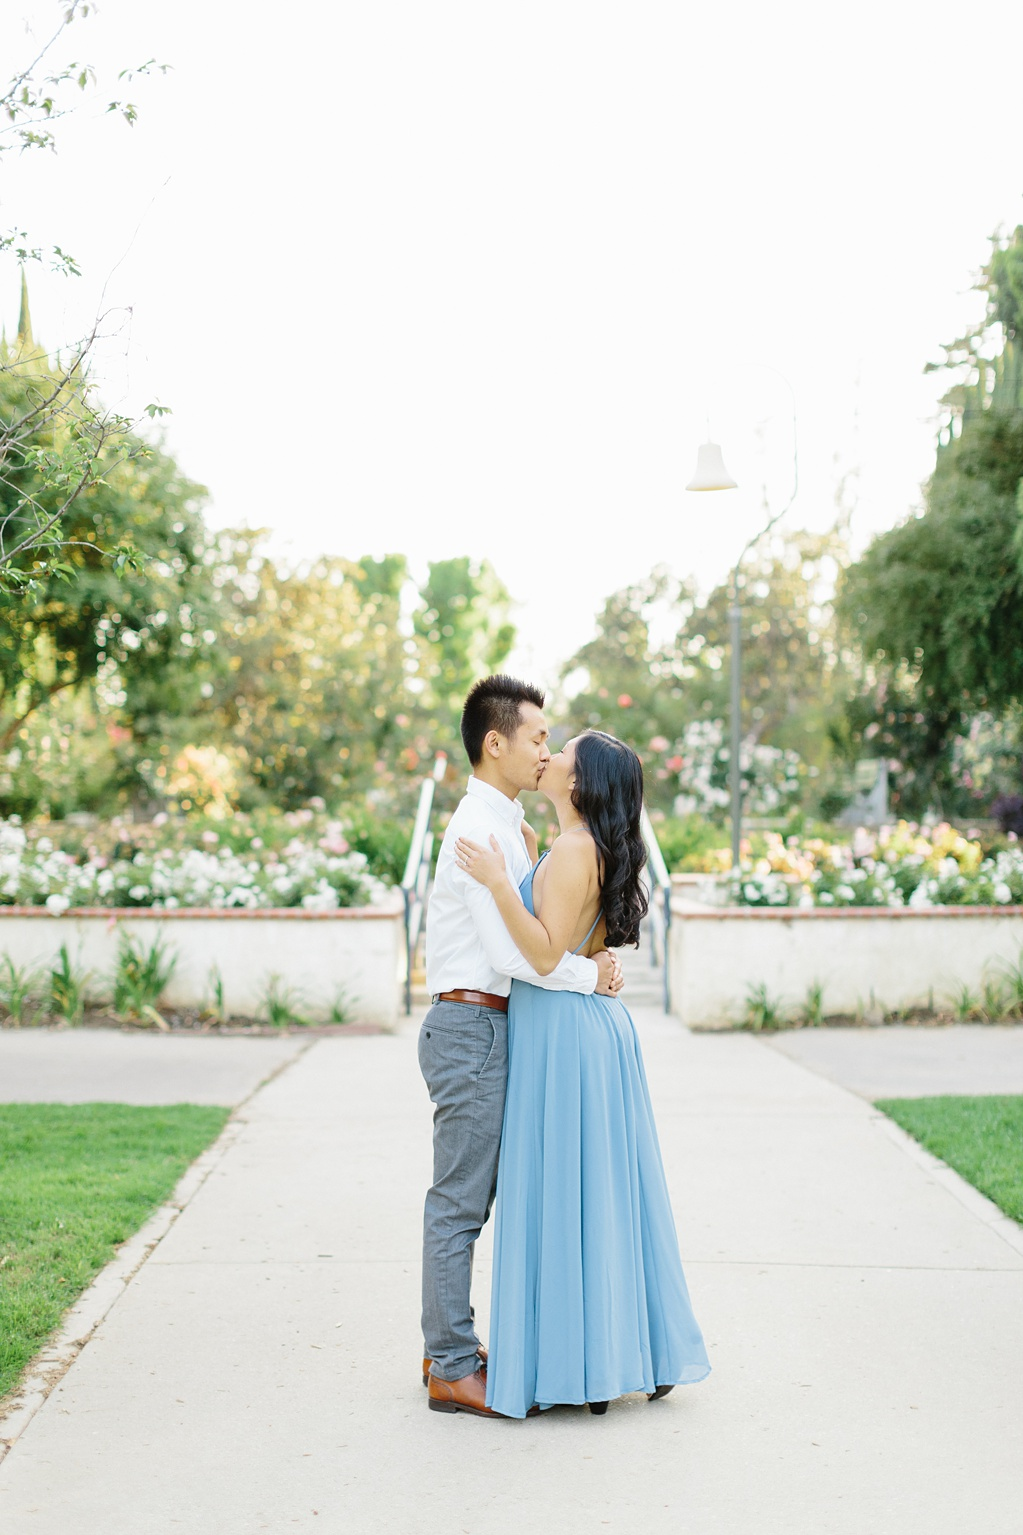 Elegant rose garden engagement shoot at Lacy Park in Pasadena by LA wedding photographer-Madison Ellis Photography (42)